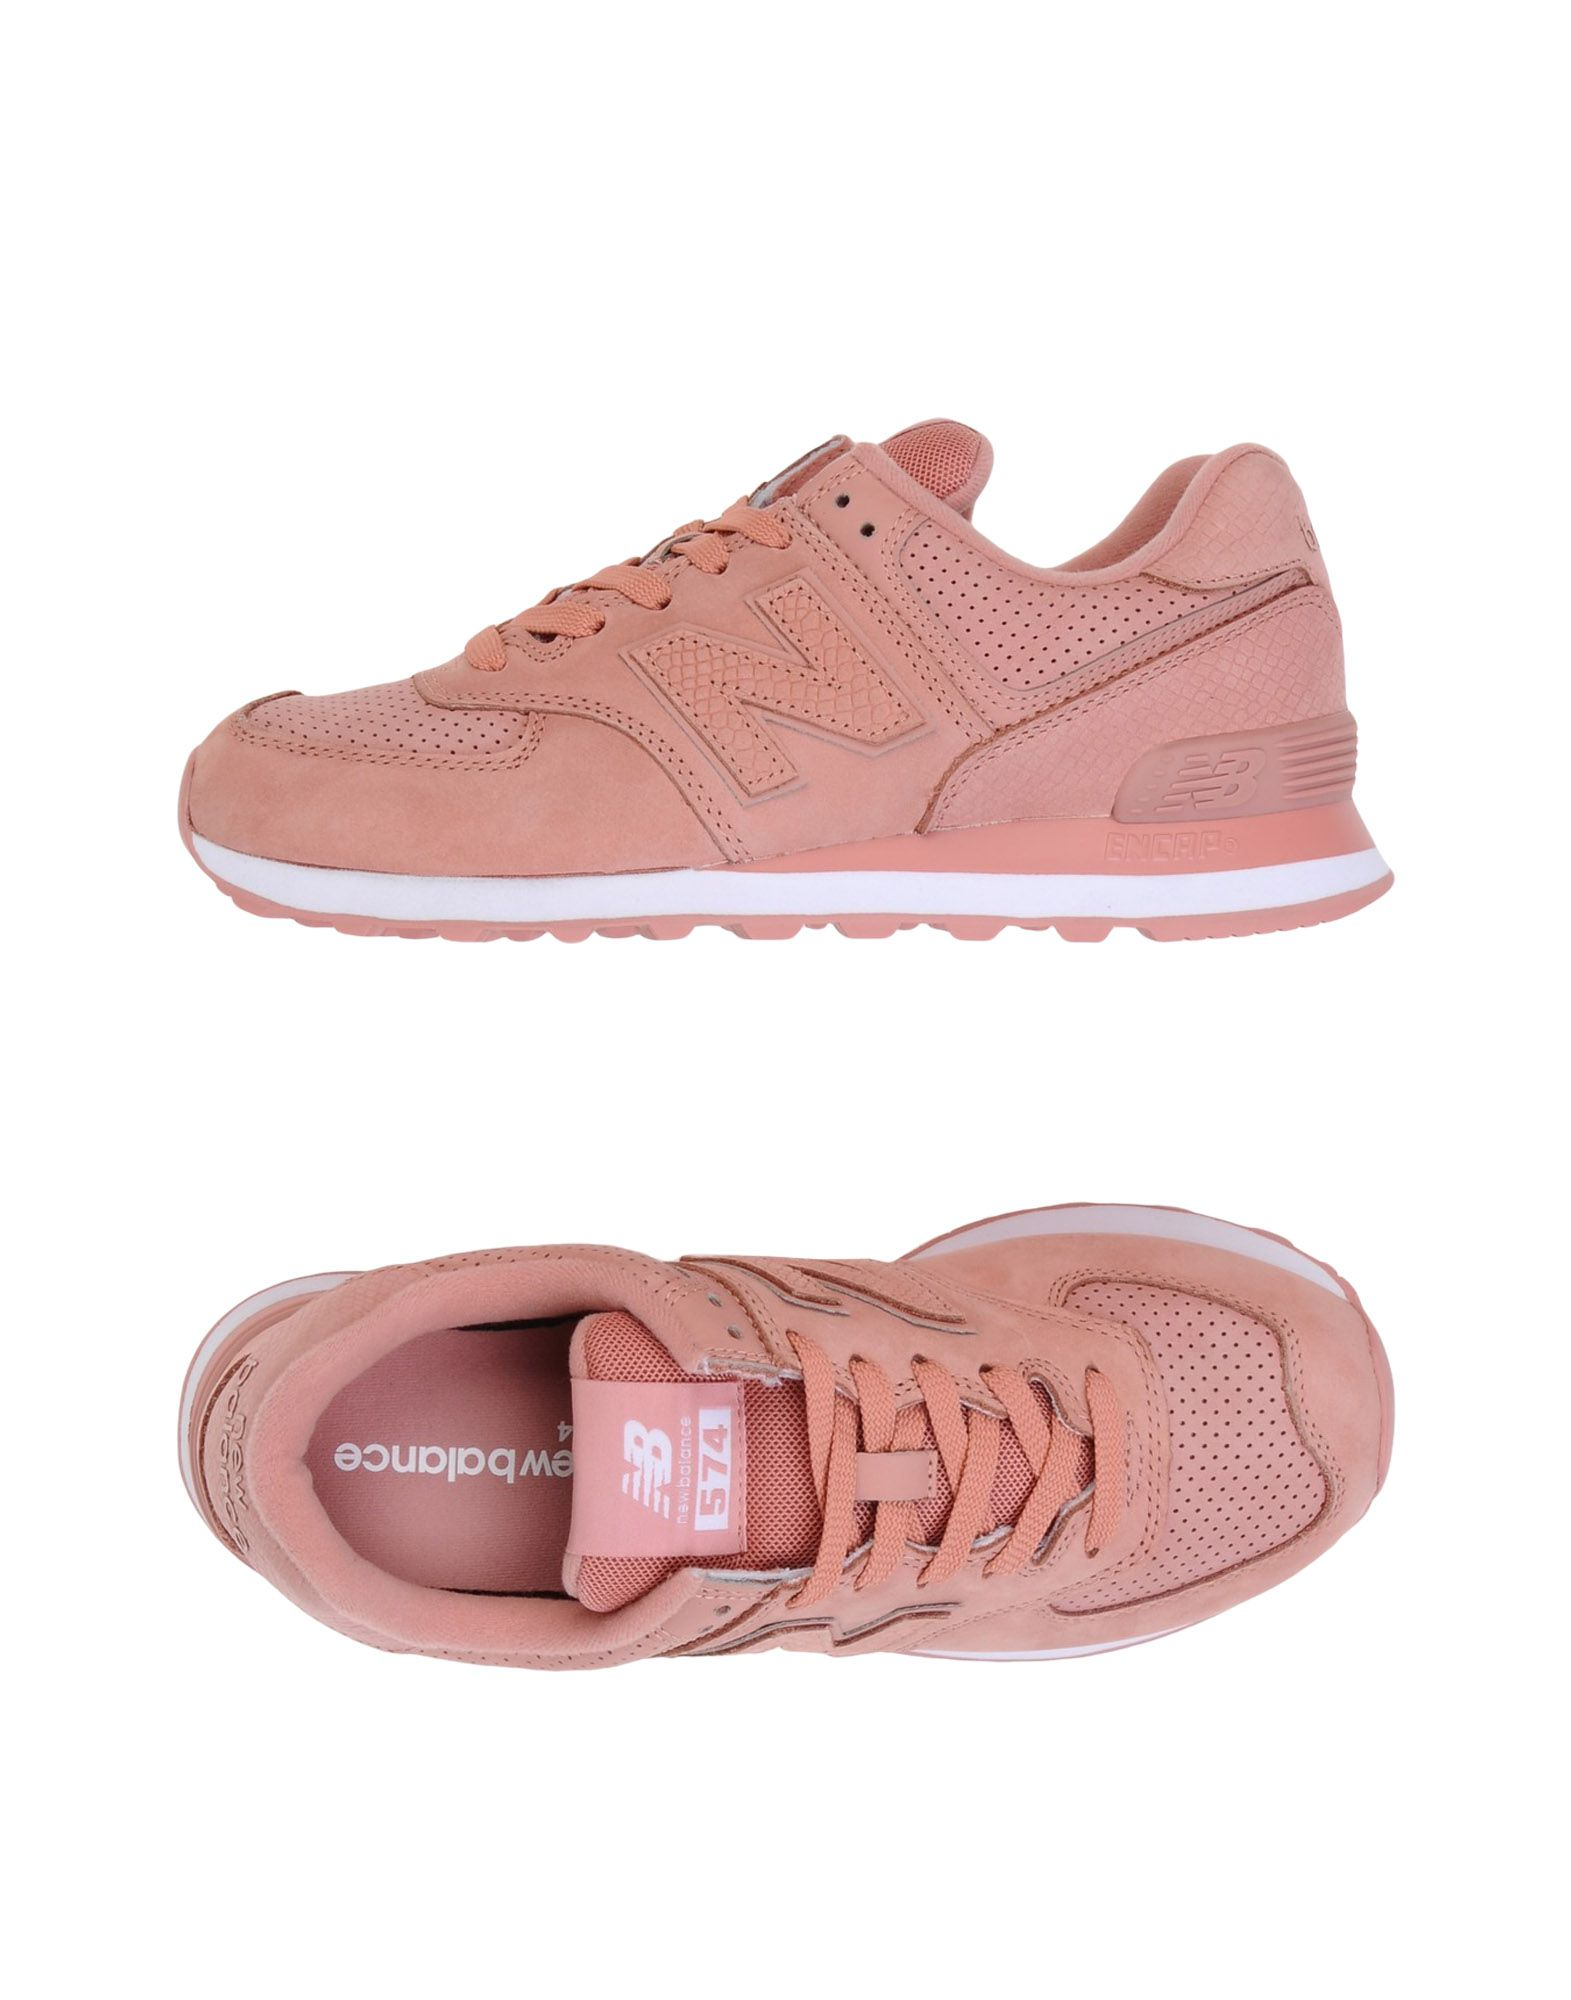 Sneakers New Balance 574 Reptile Luxe Pack - Femme - Sneakers New Balance sur